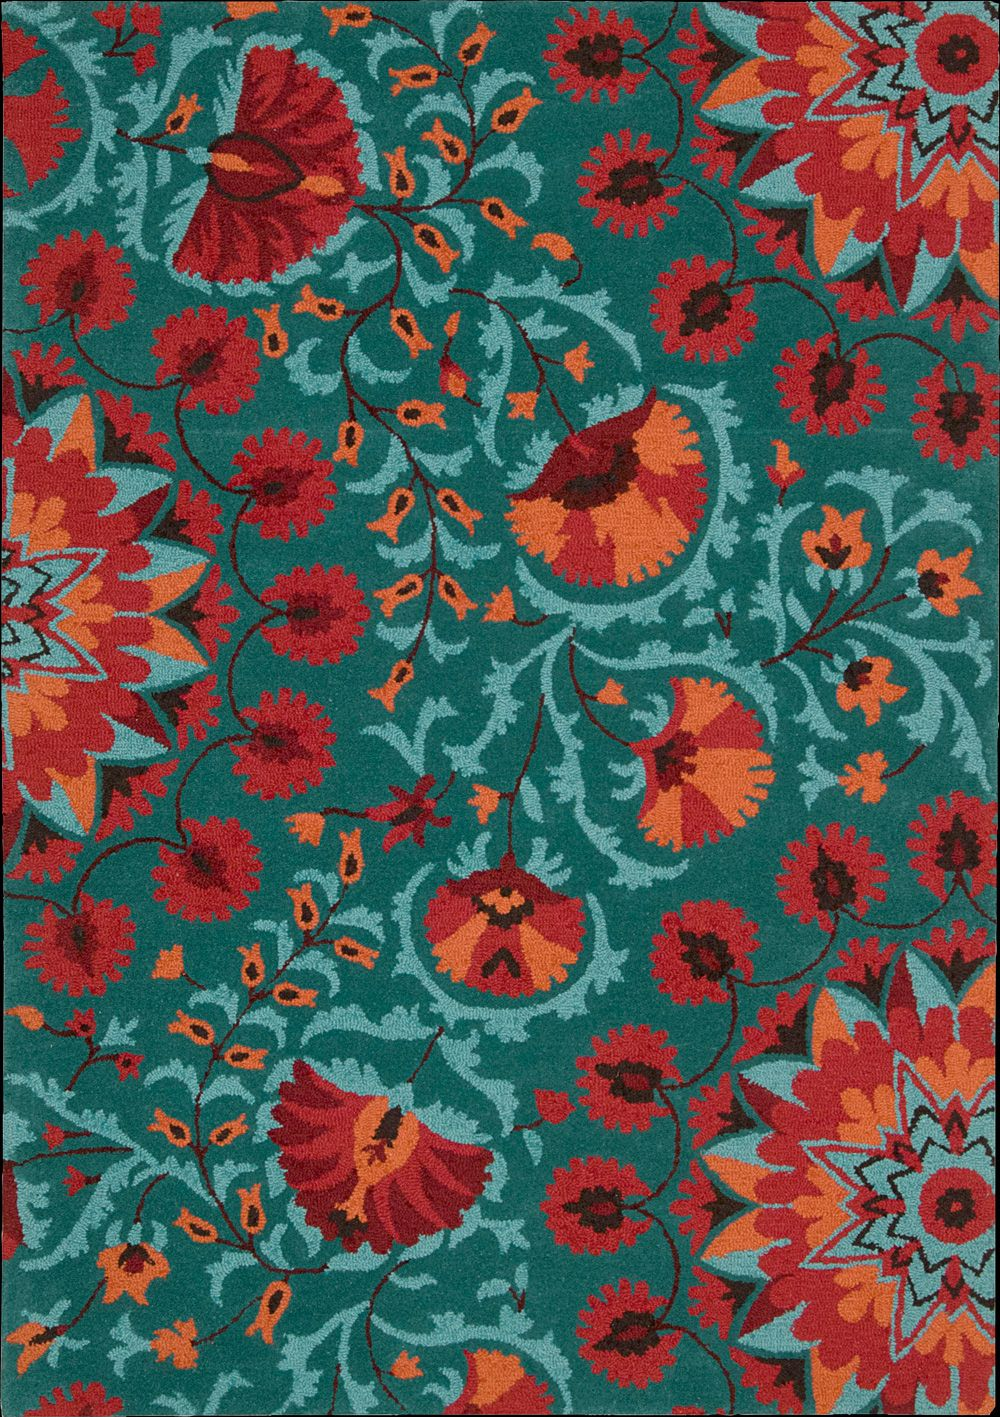 Nourison Industries Area Rug Collections Suzani Orange Aqua Teal Turquoise